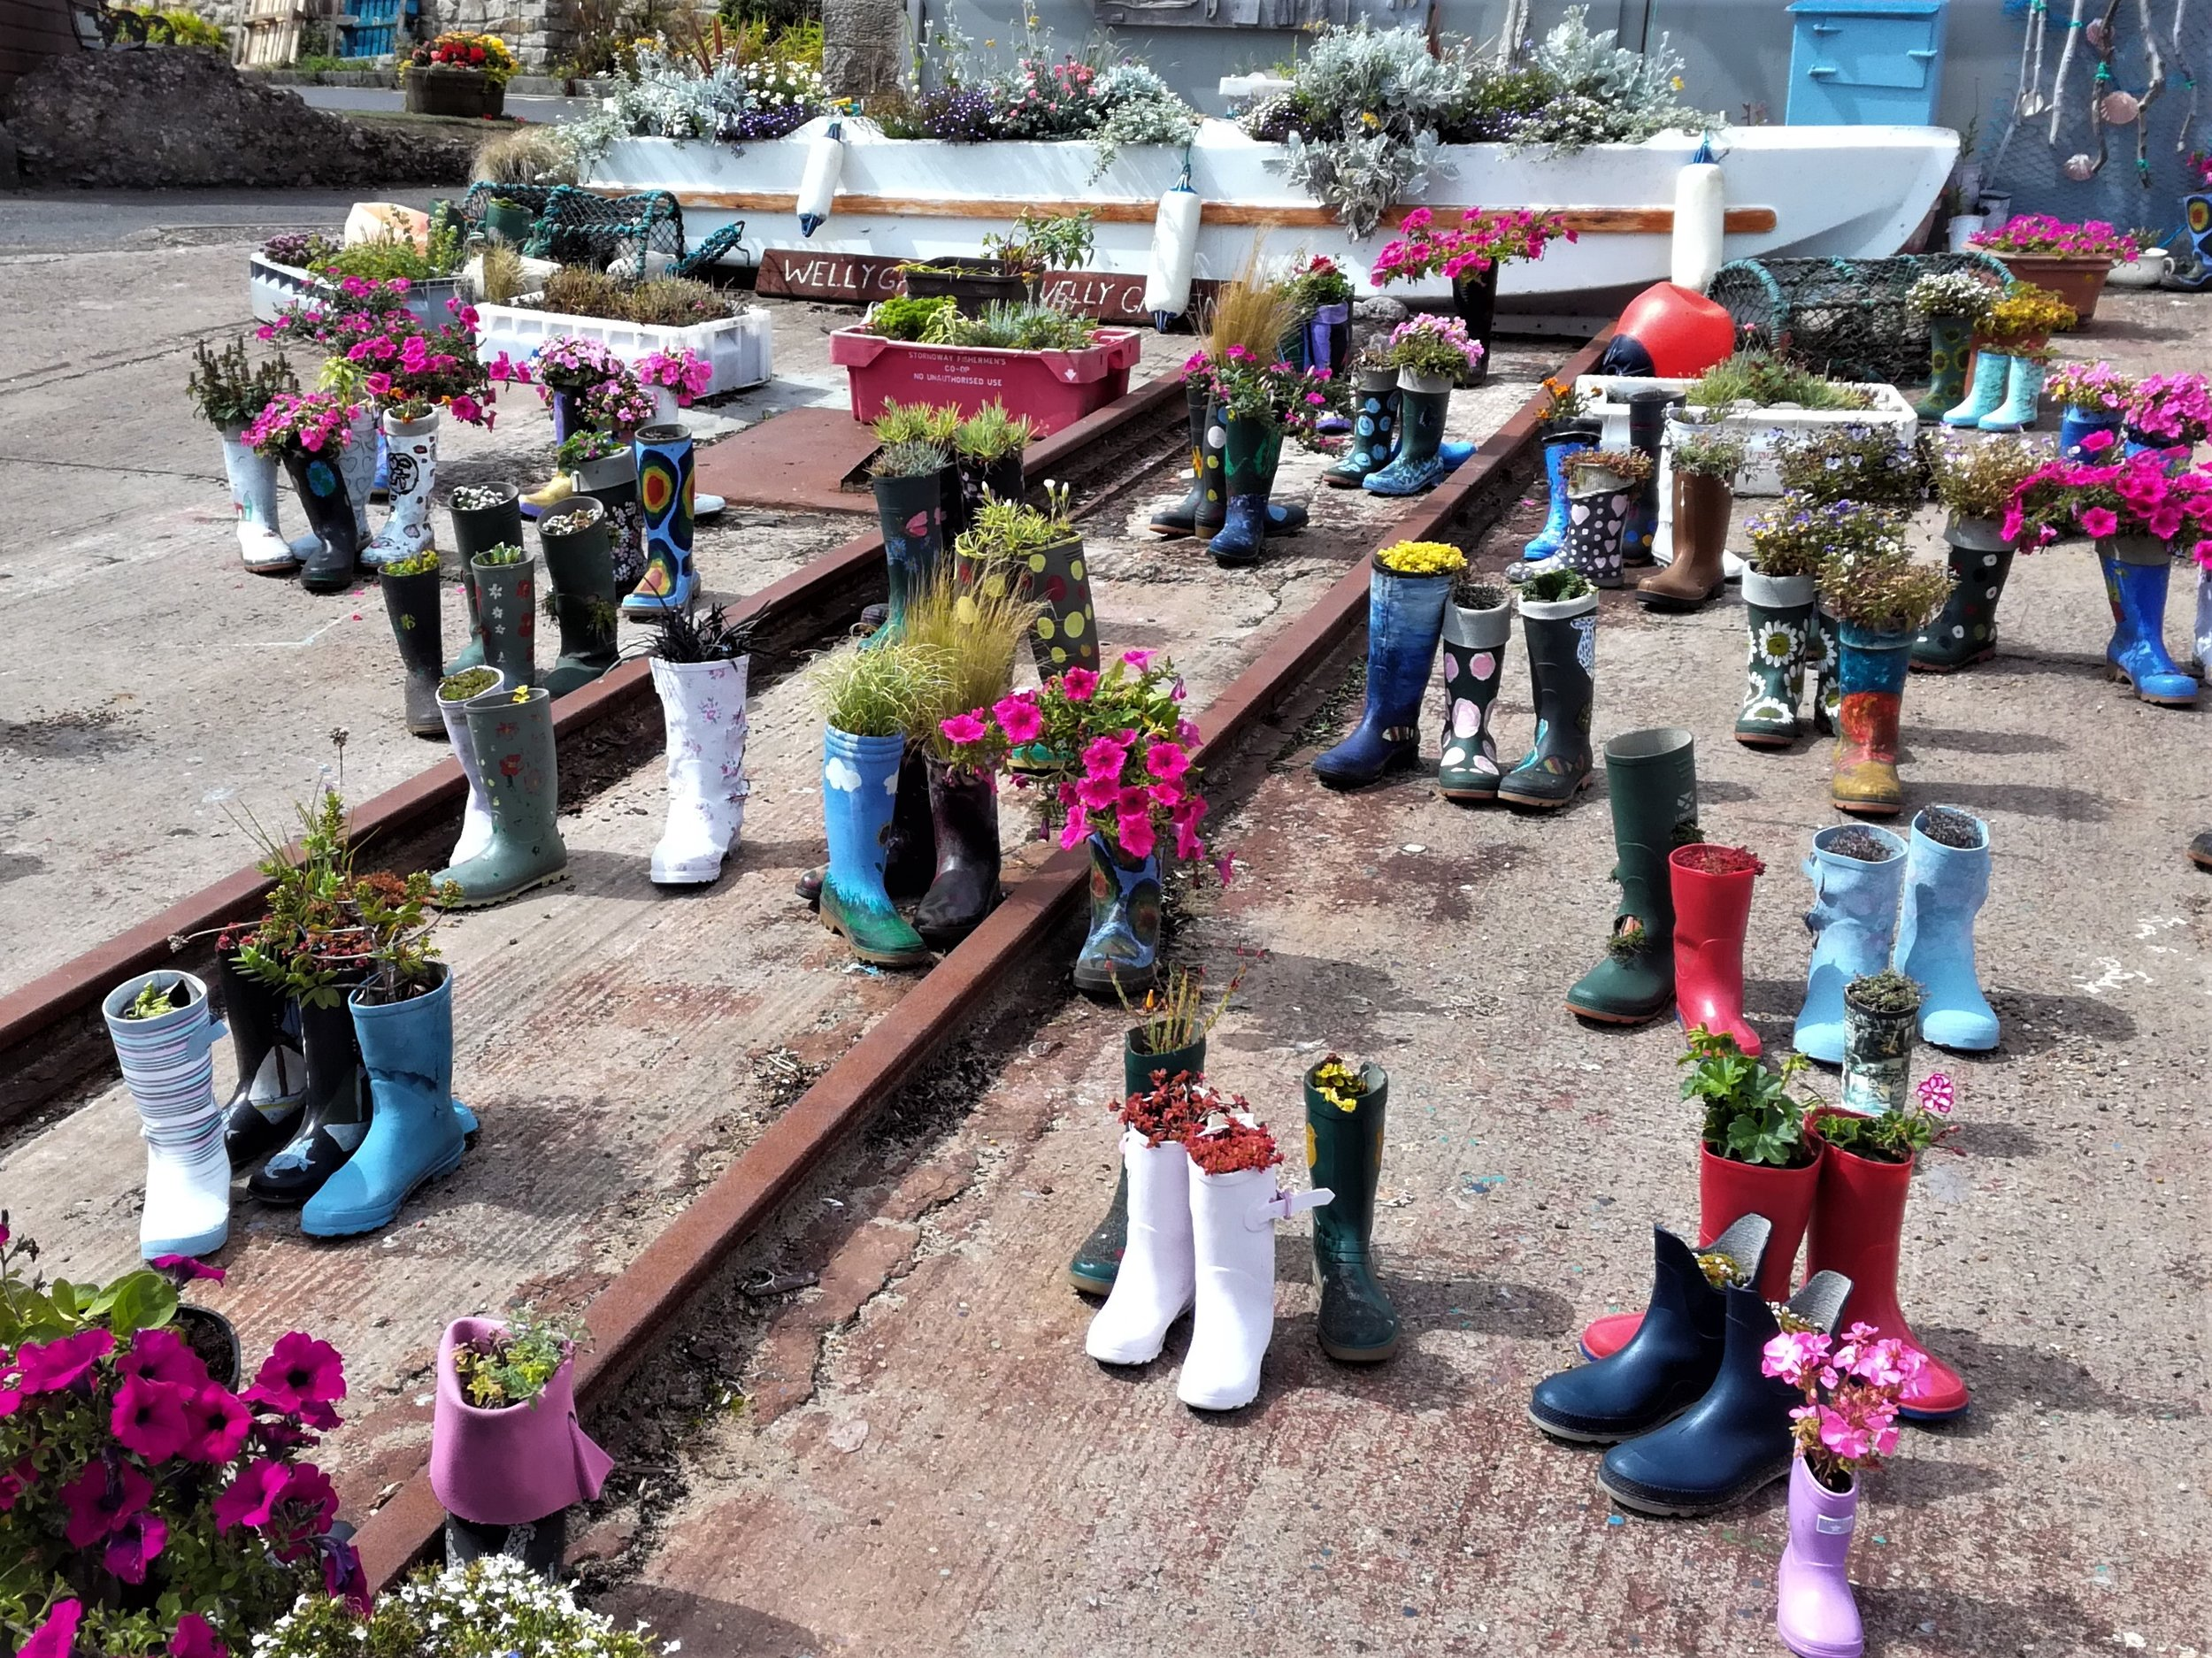 The quirky welly-boot garden at St Monan's always raises a smile.